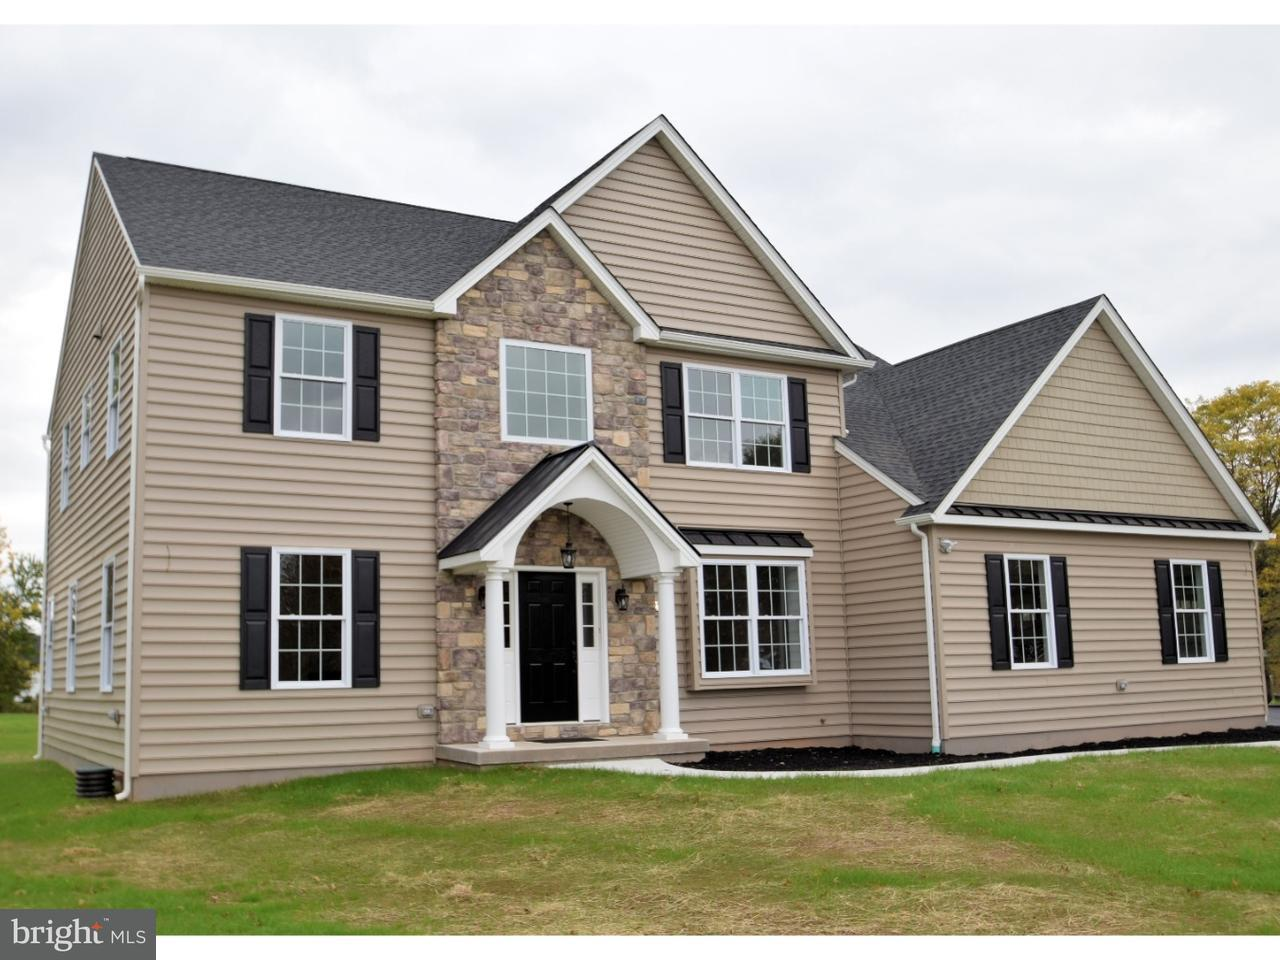 Single Family Home for Sale at 1806 FAIRGROUNDS RD #LOT #2 Hatfield, Pennsylvania 19440 United States